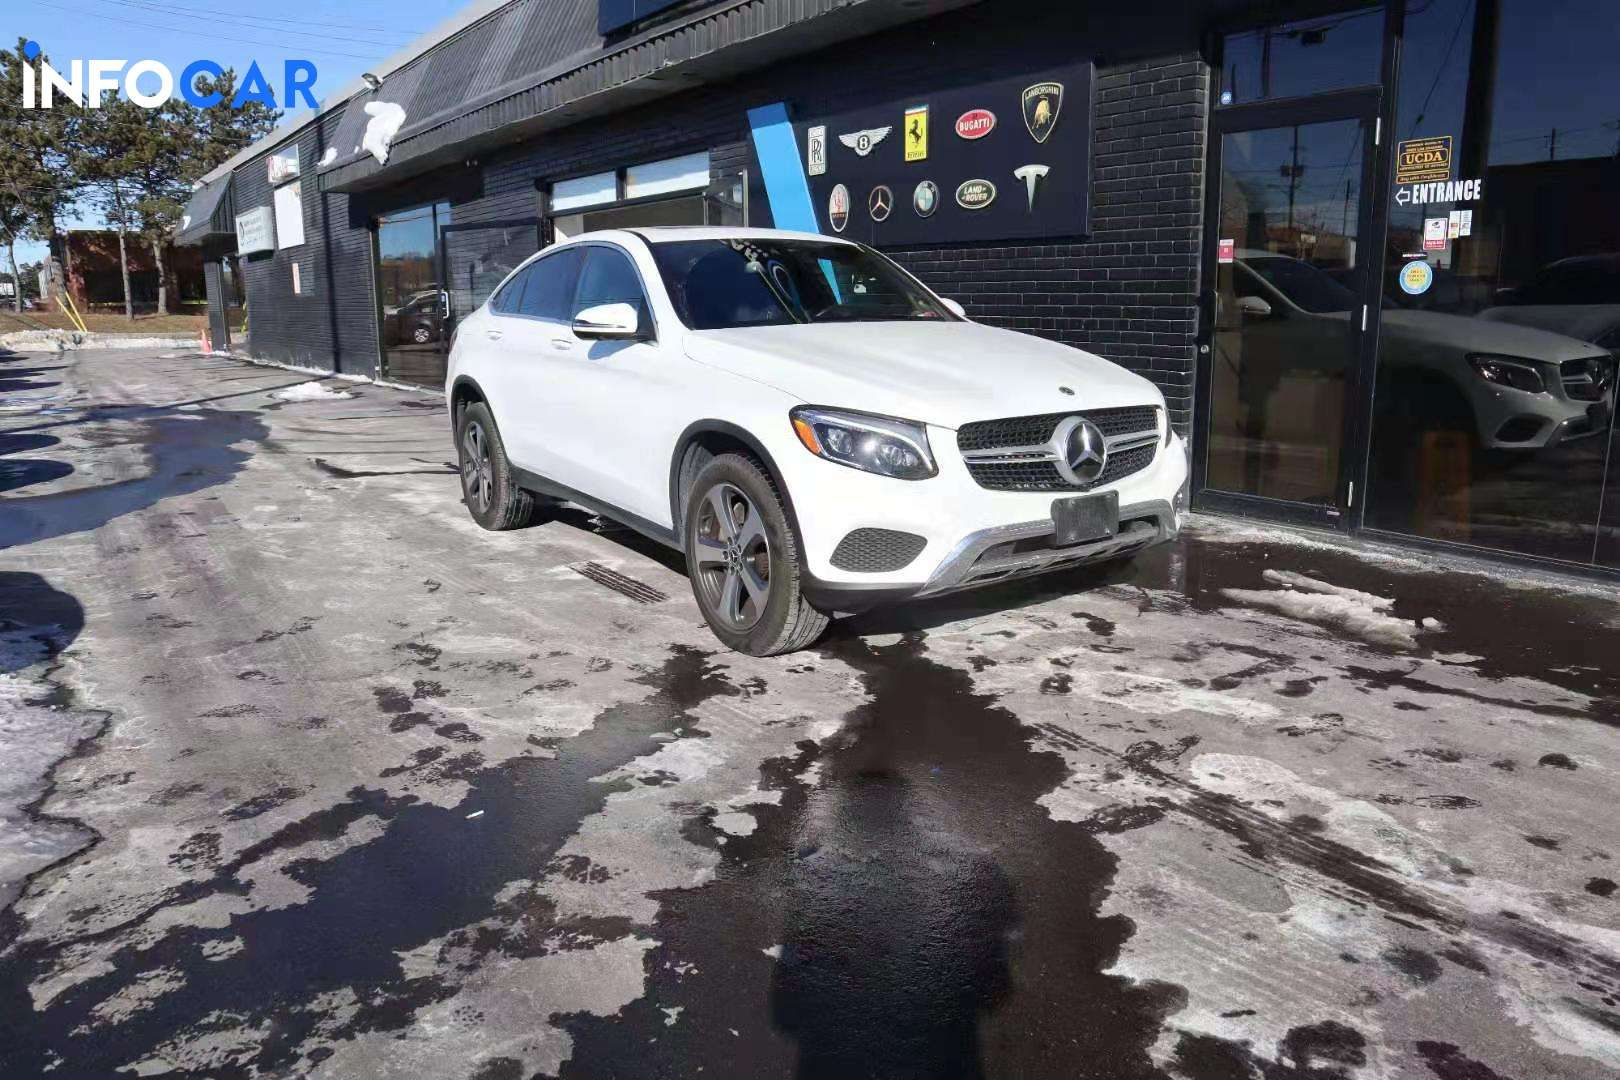 2019 Mercedes-Benz GLC-Class Coupe 300 - INFOCAR - Toronto's Most Comprehensive New and Used Auto Trading Platform